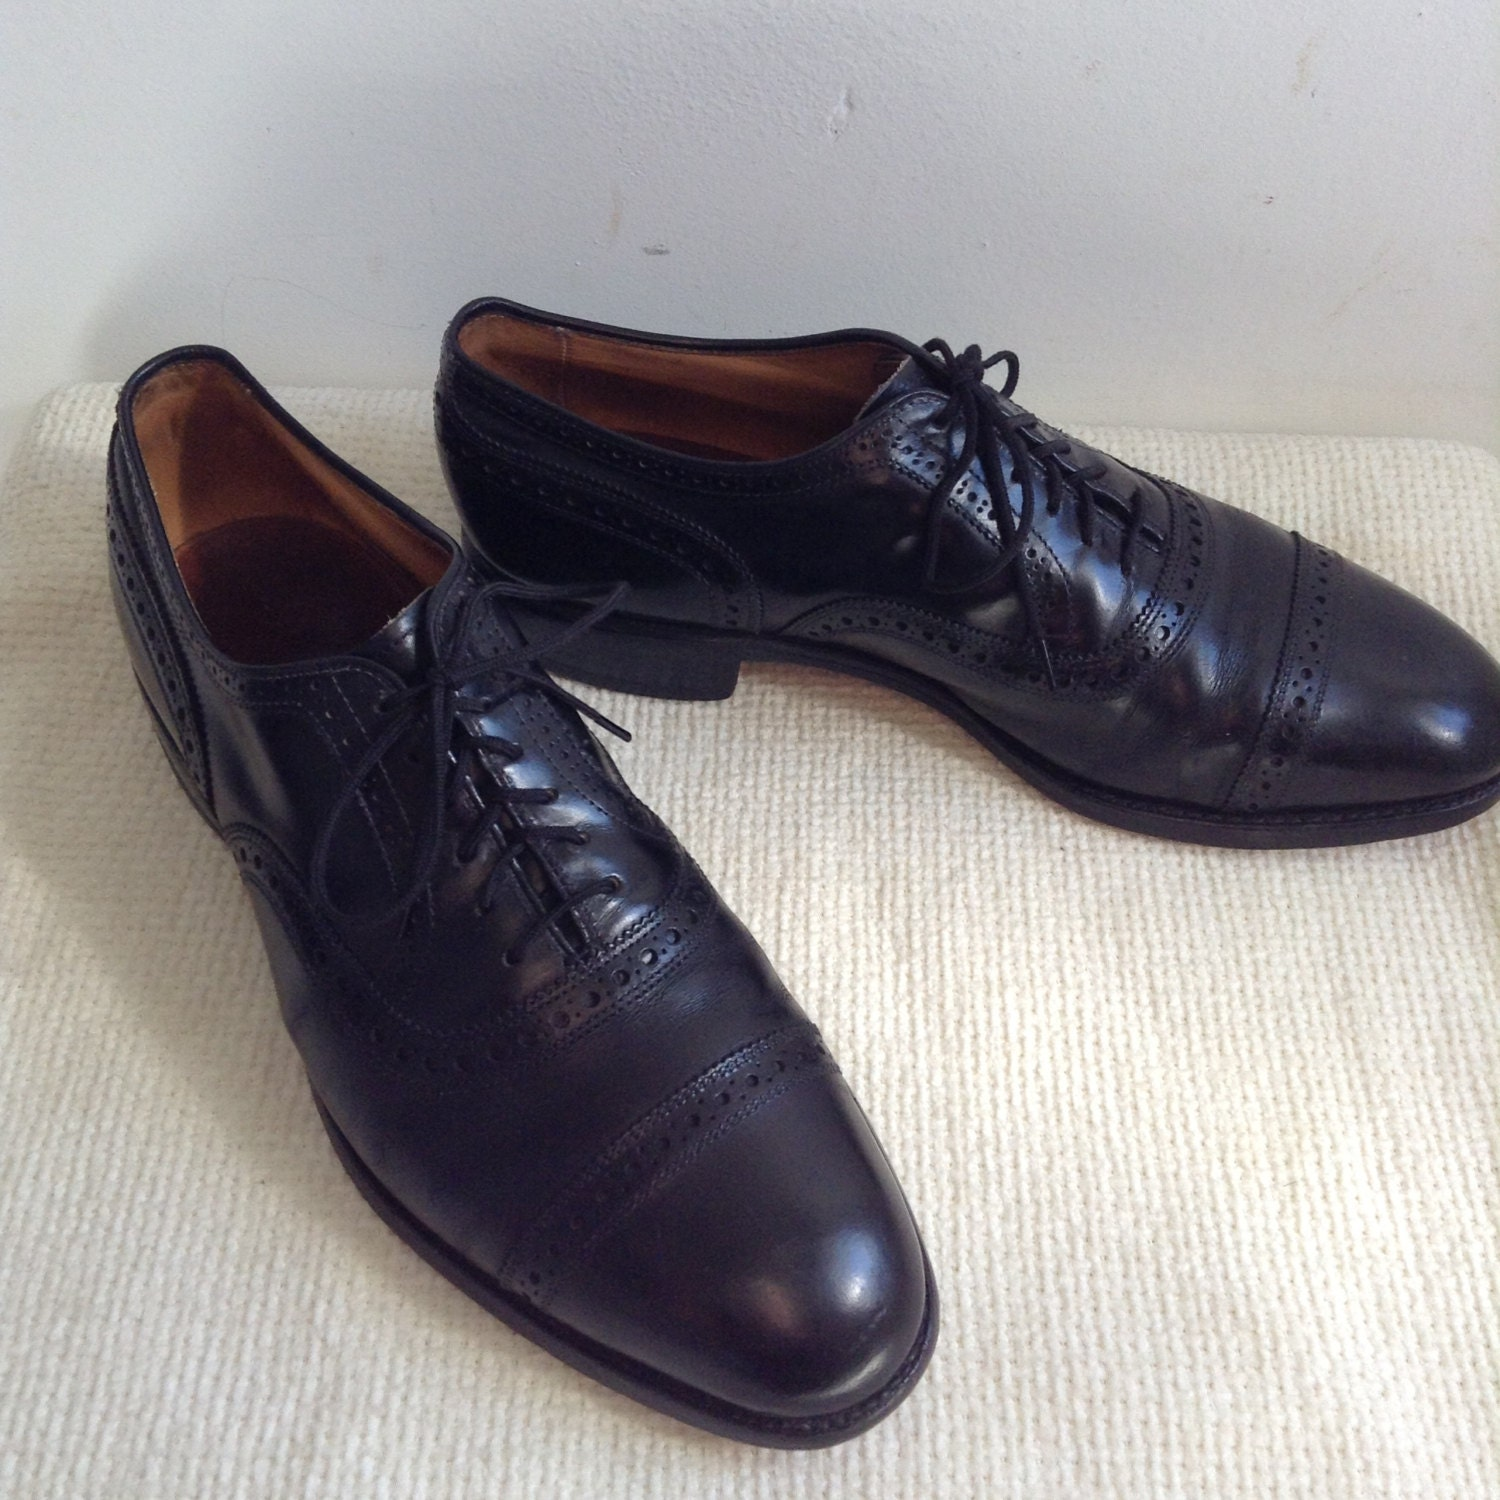 Men's Allen Edmonds SHOES, Vintage.  Dress Shoes.  Black E. Cap Toe, size 8 E. Black  Leather.  Made in USA. a2fe3a